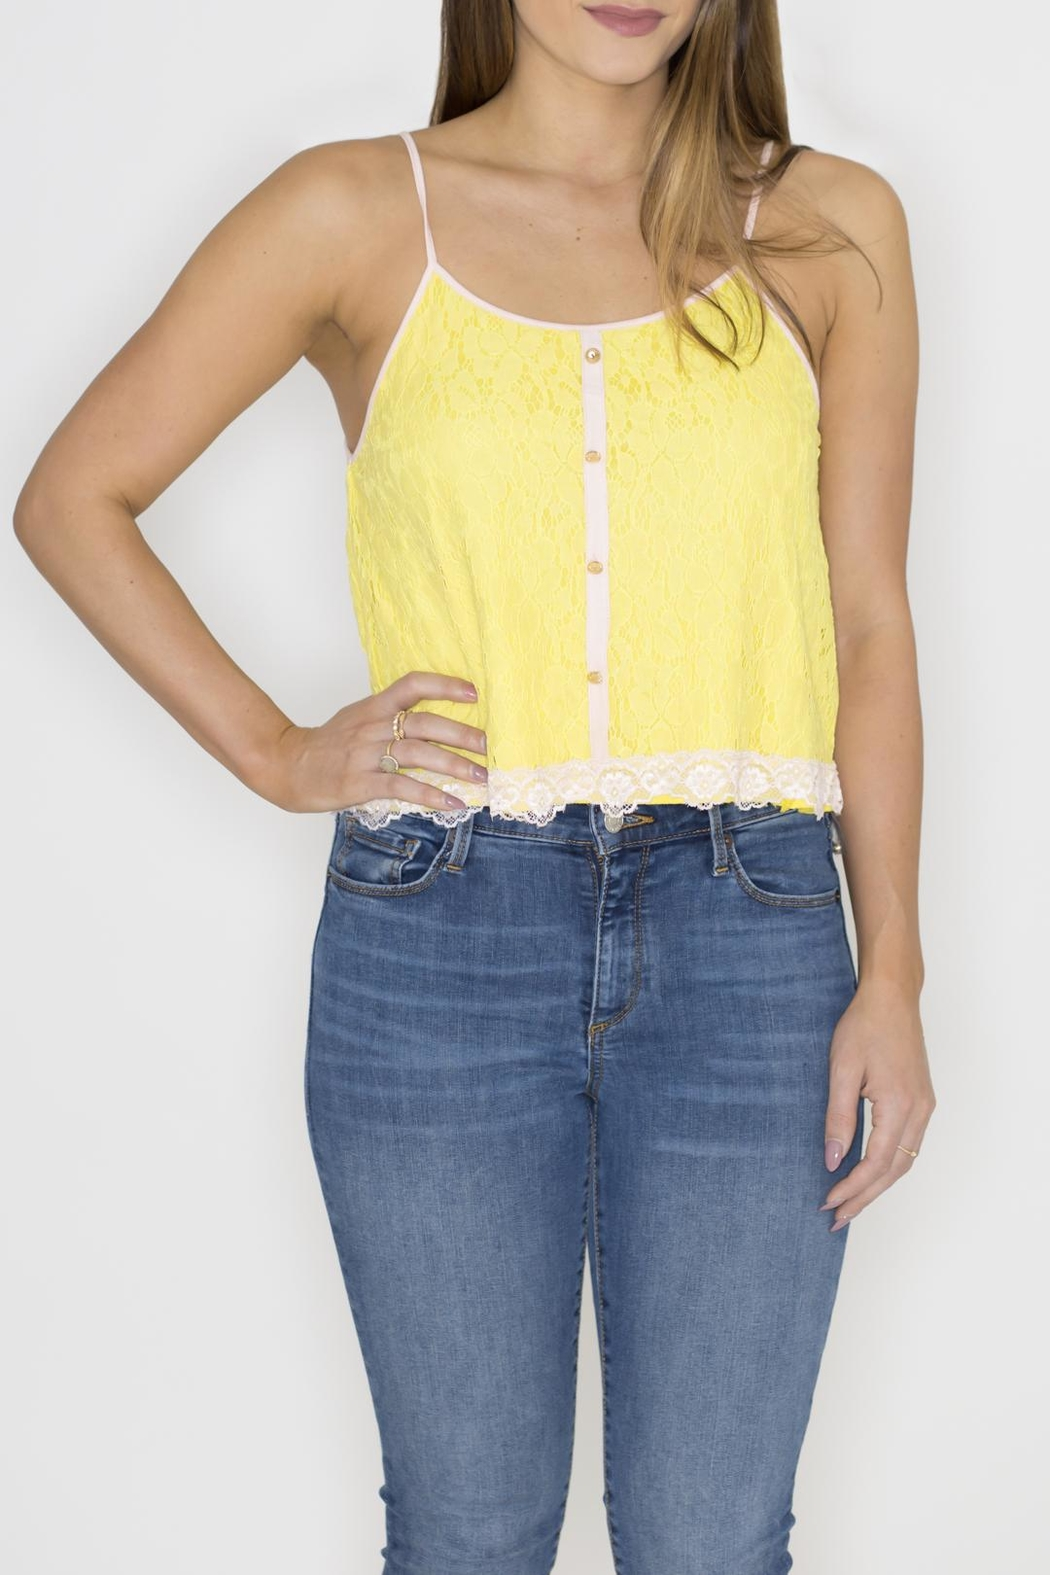 Machine Jeans Yellow Lace Overlay Top - Main Image